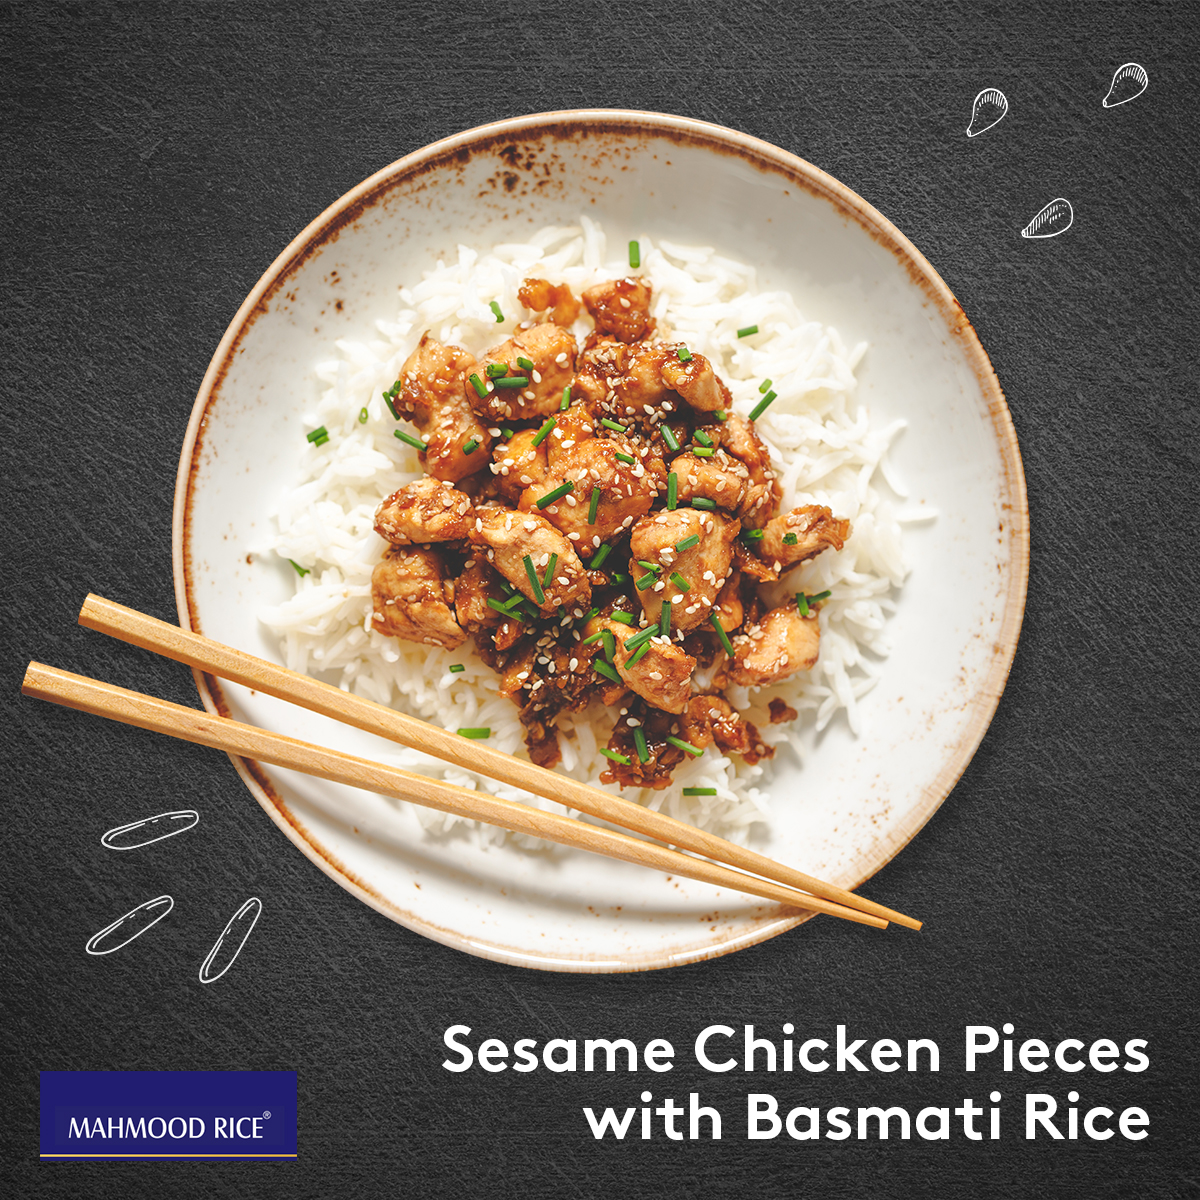 Sesame Chicken Pieces with Basmati Rice